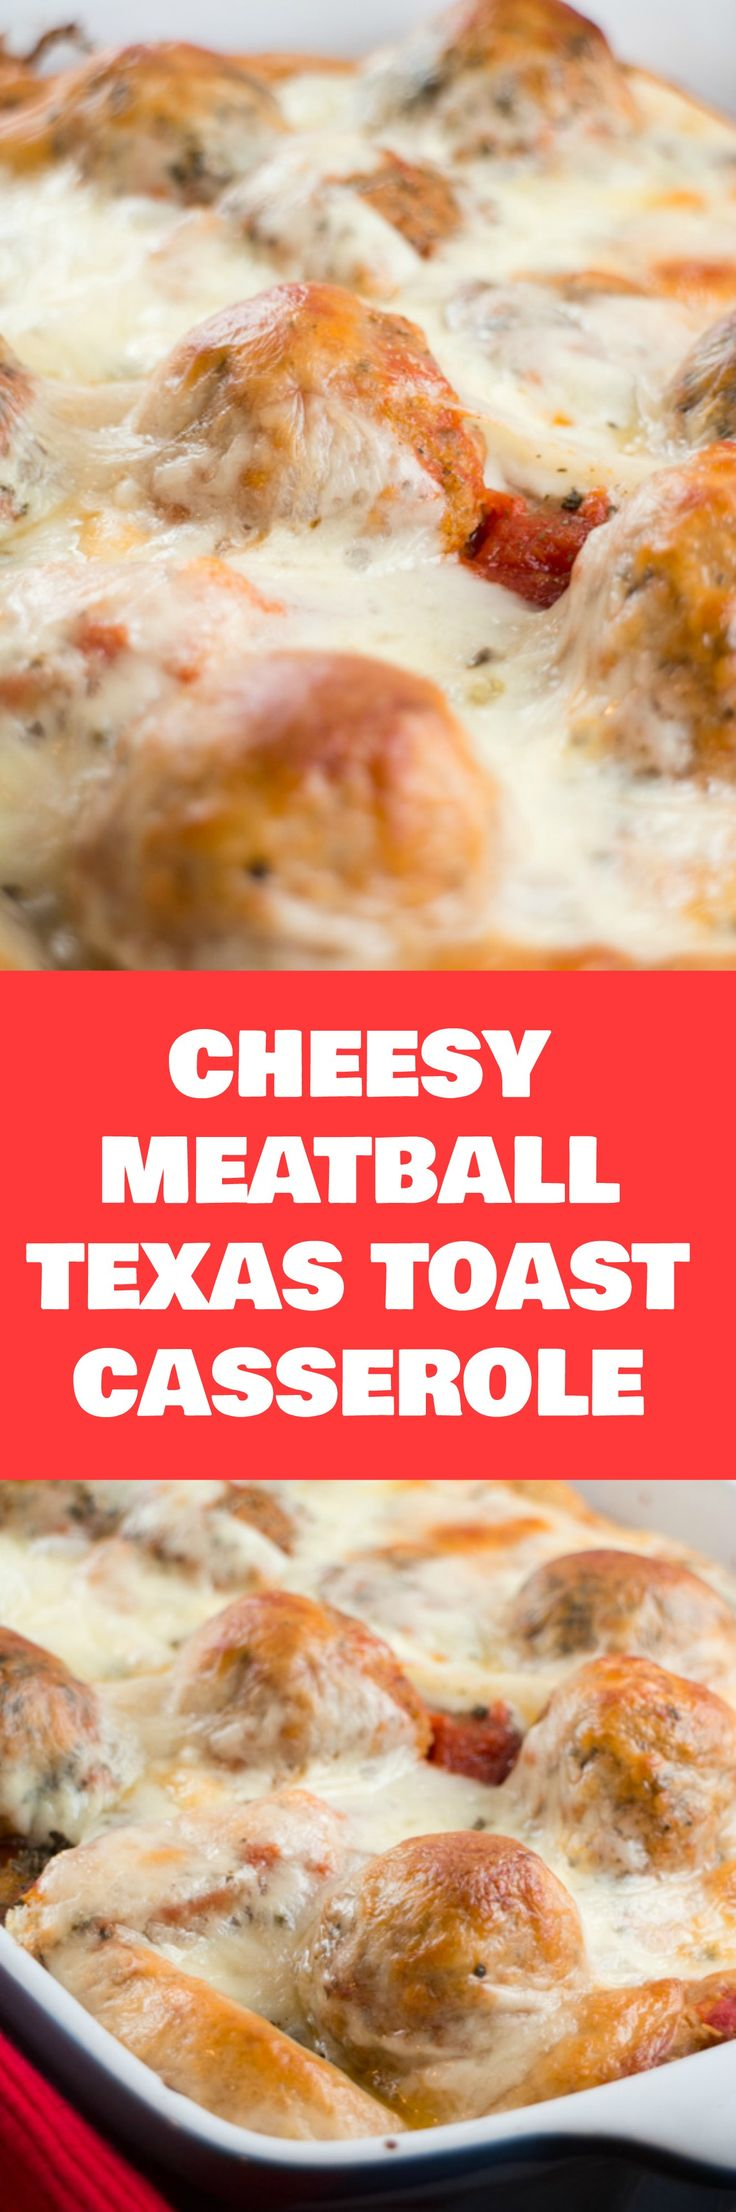 Extra Cheesy Meatball Texas Toast Casserole is a delicious, quick meal to serve your family. Everyone will want seconds! Use precooked meatballs to make it even faster!